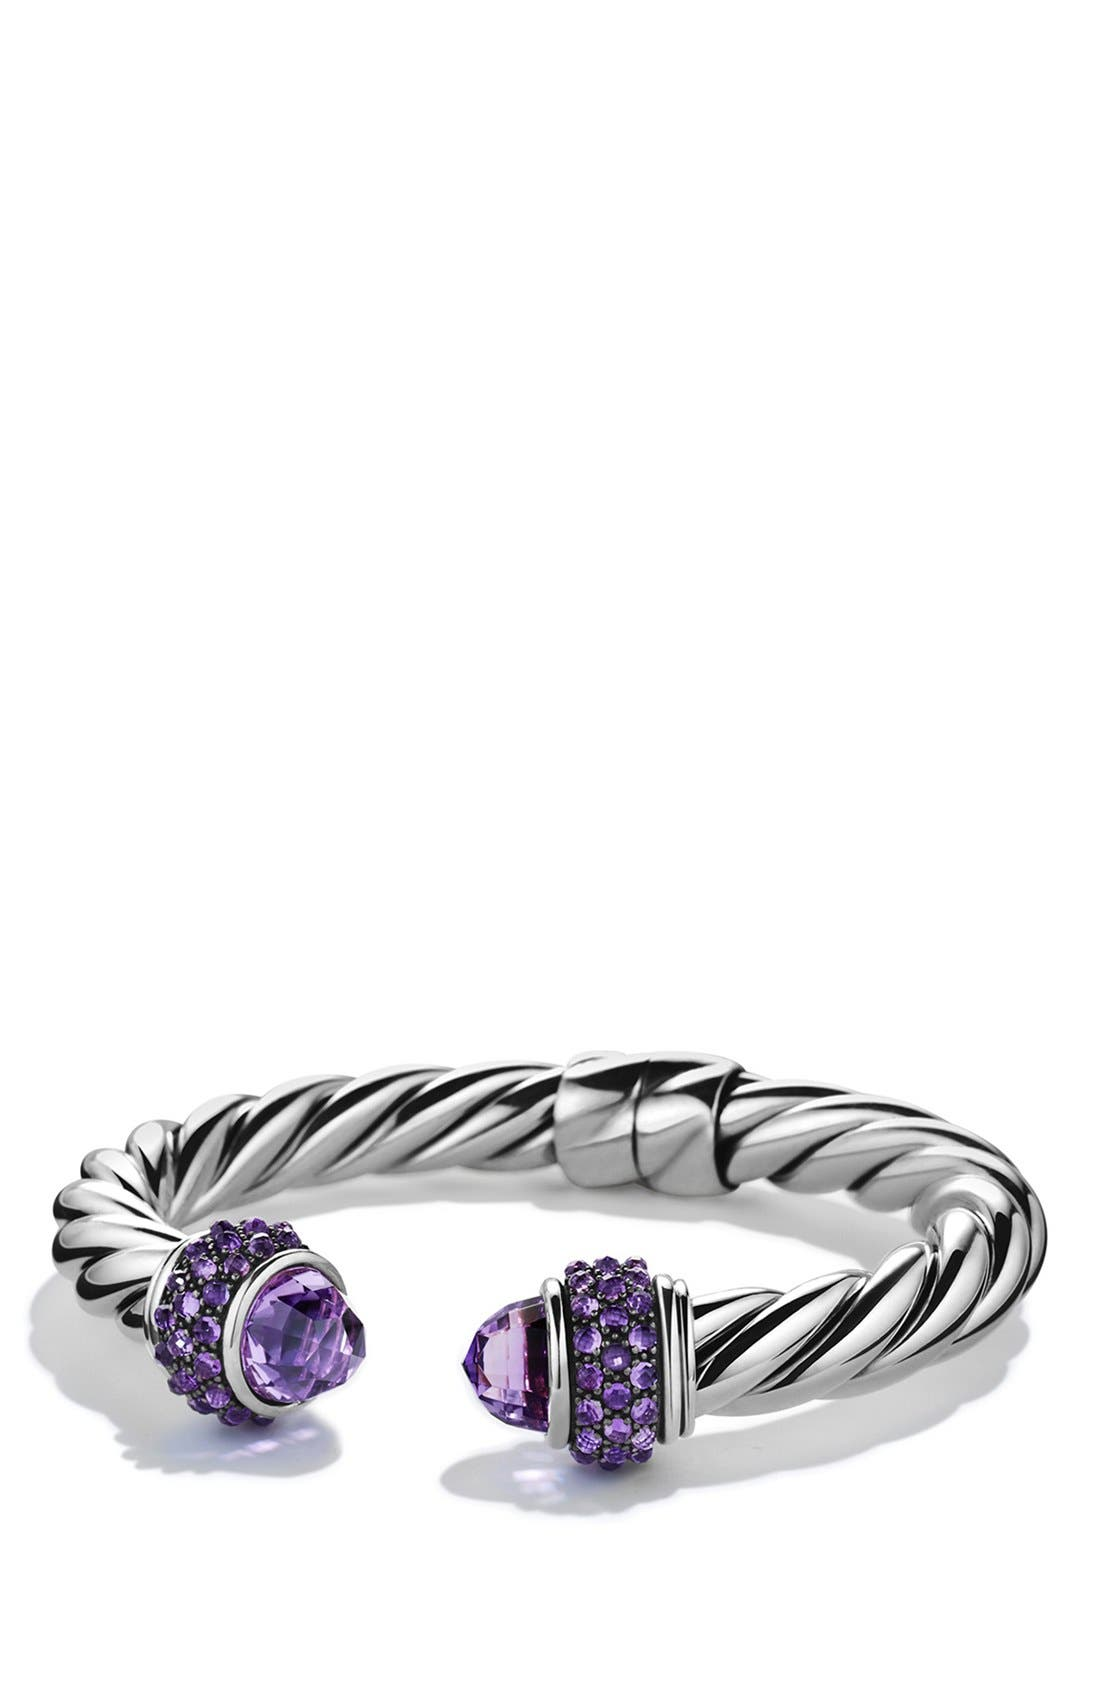 Alternate Image 1 Selected - David Yurman Bracelet with Semiprecious Stones